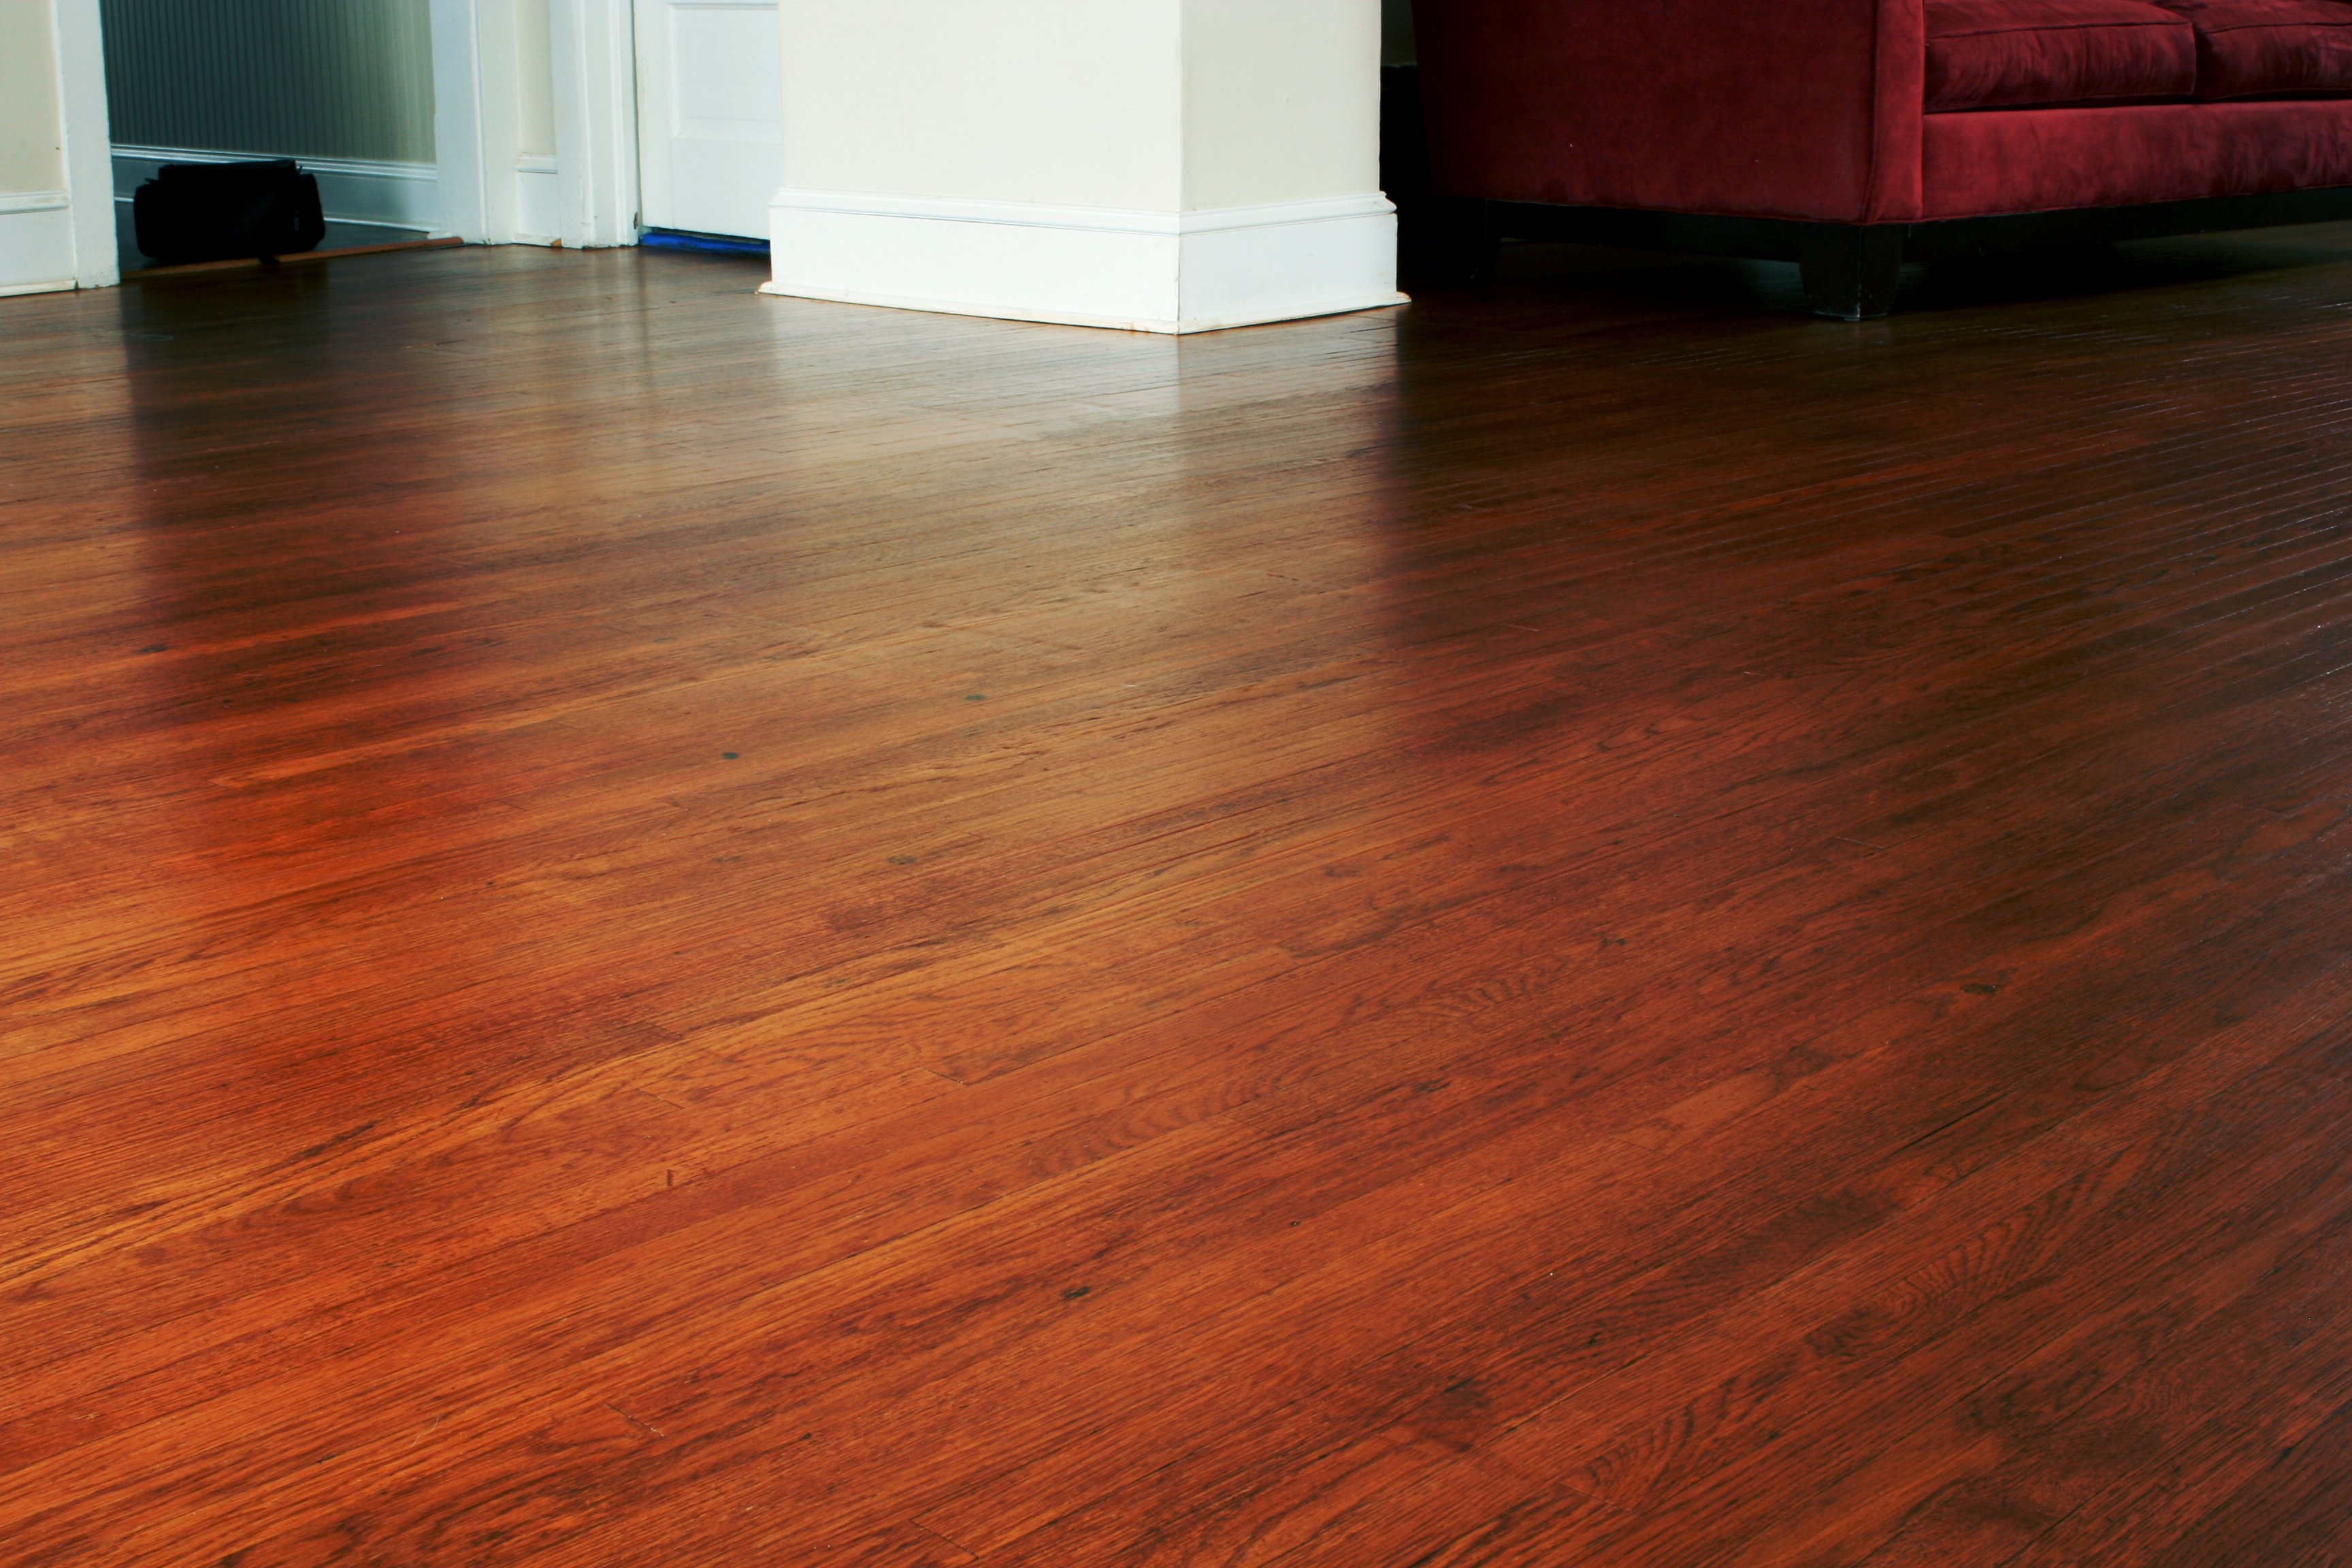 Engineered Hardwood Flooring Pros Cons Install  Cost - Hardwood floors in kitchen pros and cons